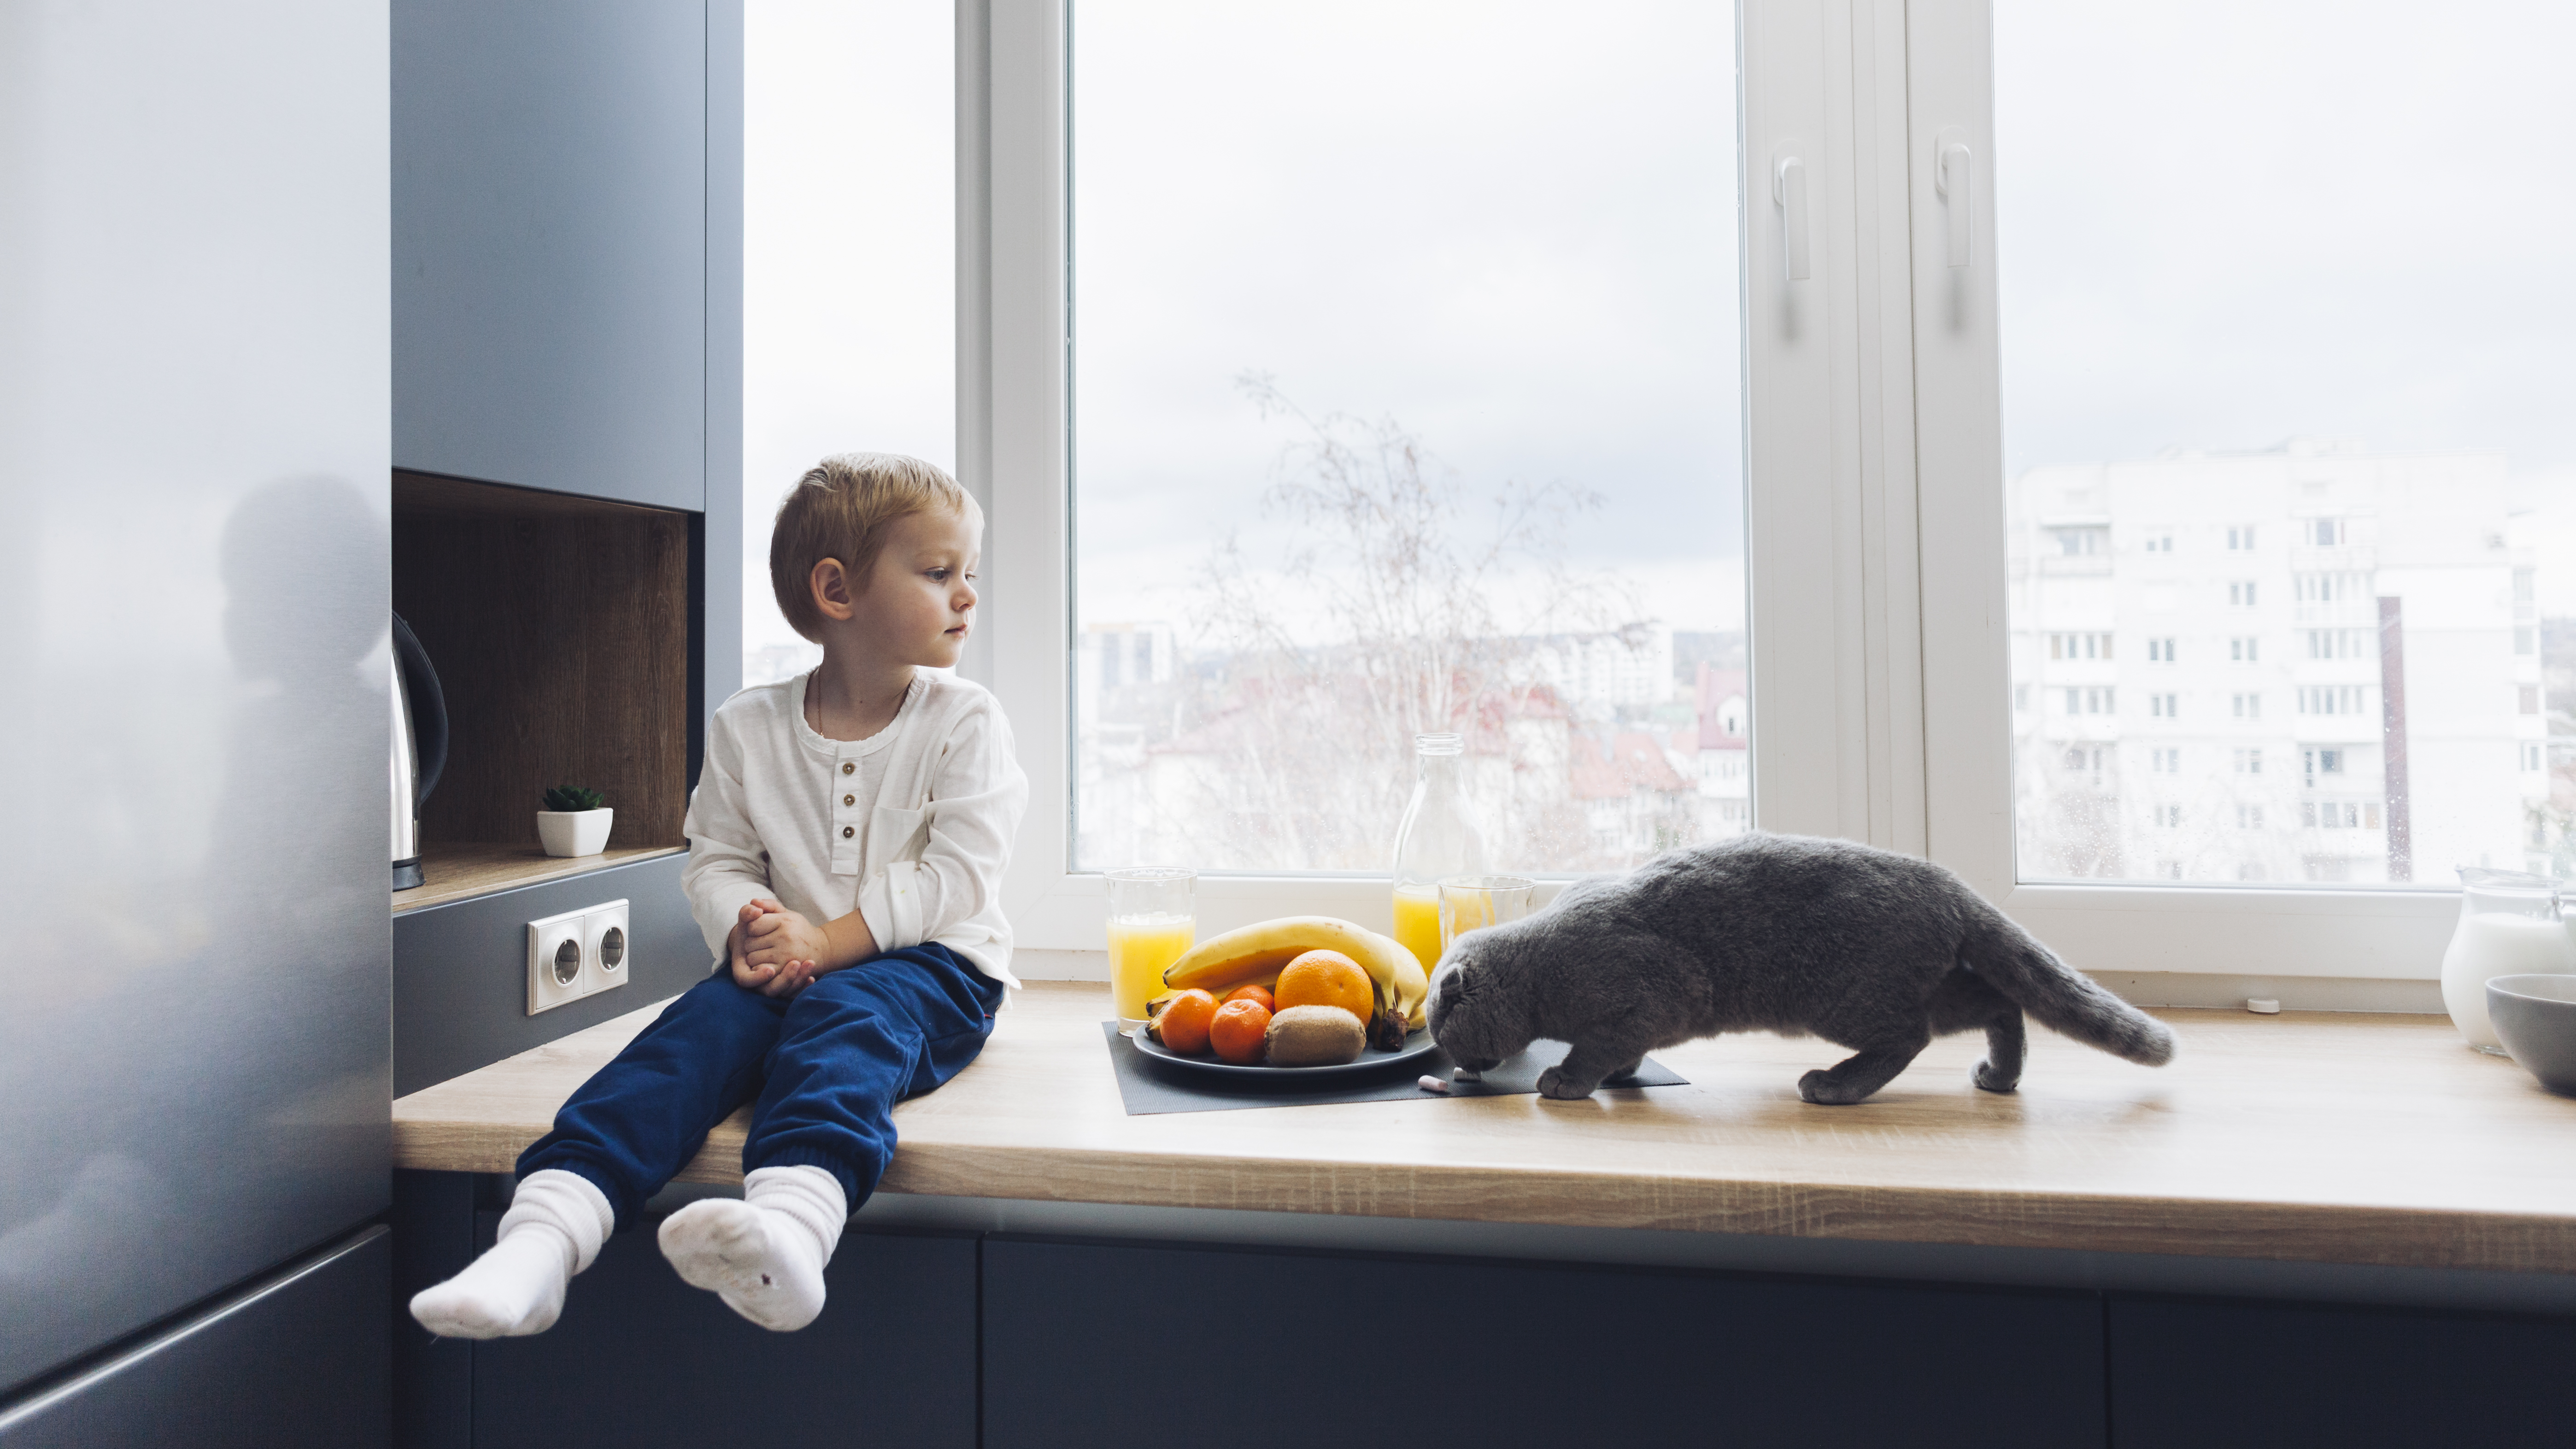 THE MOST ADEQUATE FRUITS AND VEGETABLE FOR CATS